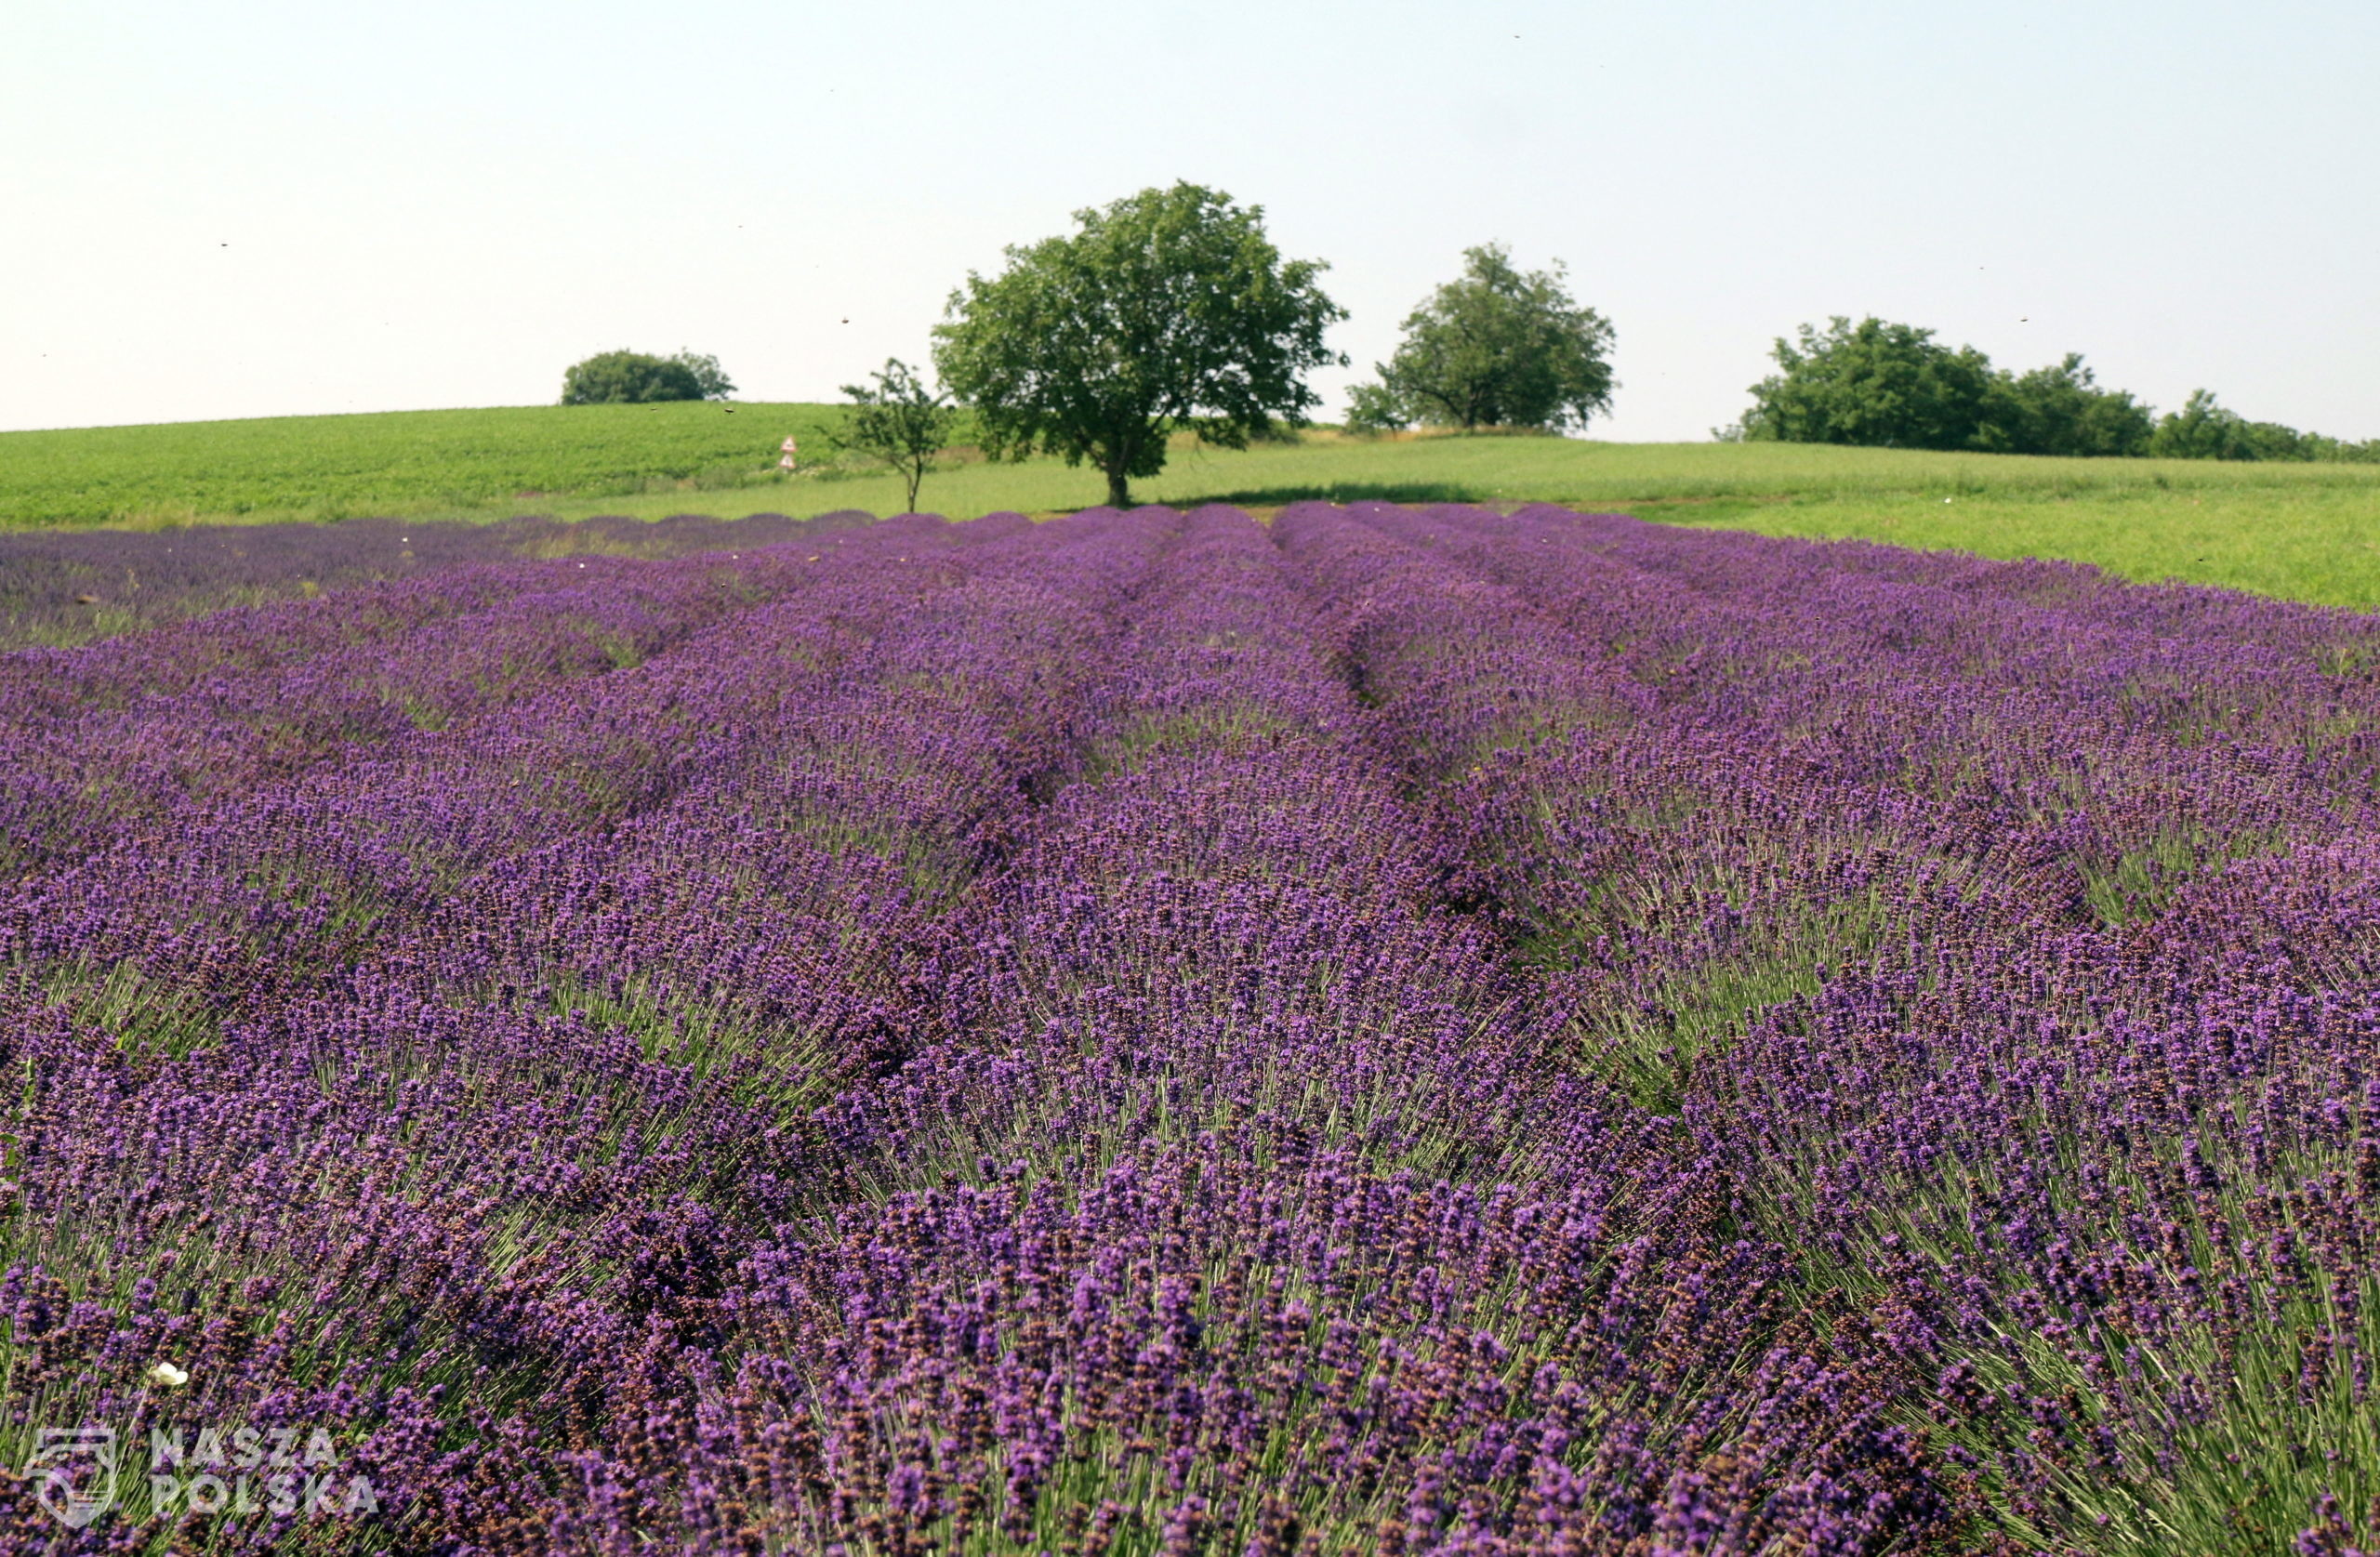 epa08511884 Lavenders are blooming in a field at Alsodobsza, Hungary, 27 June 2020.  EPA/Janos Vajda HUNGARY OUT  Dostawca: PAP/EPA.